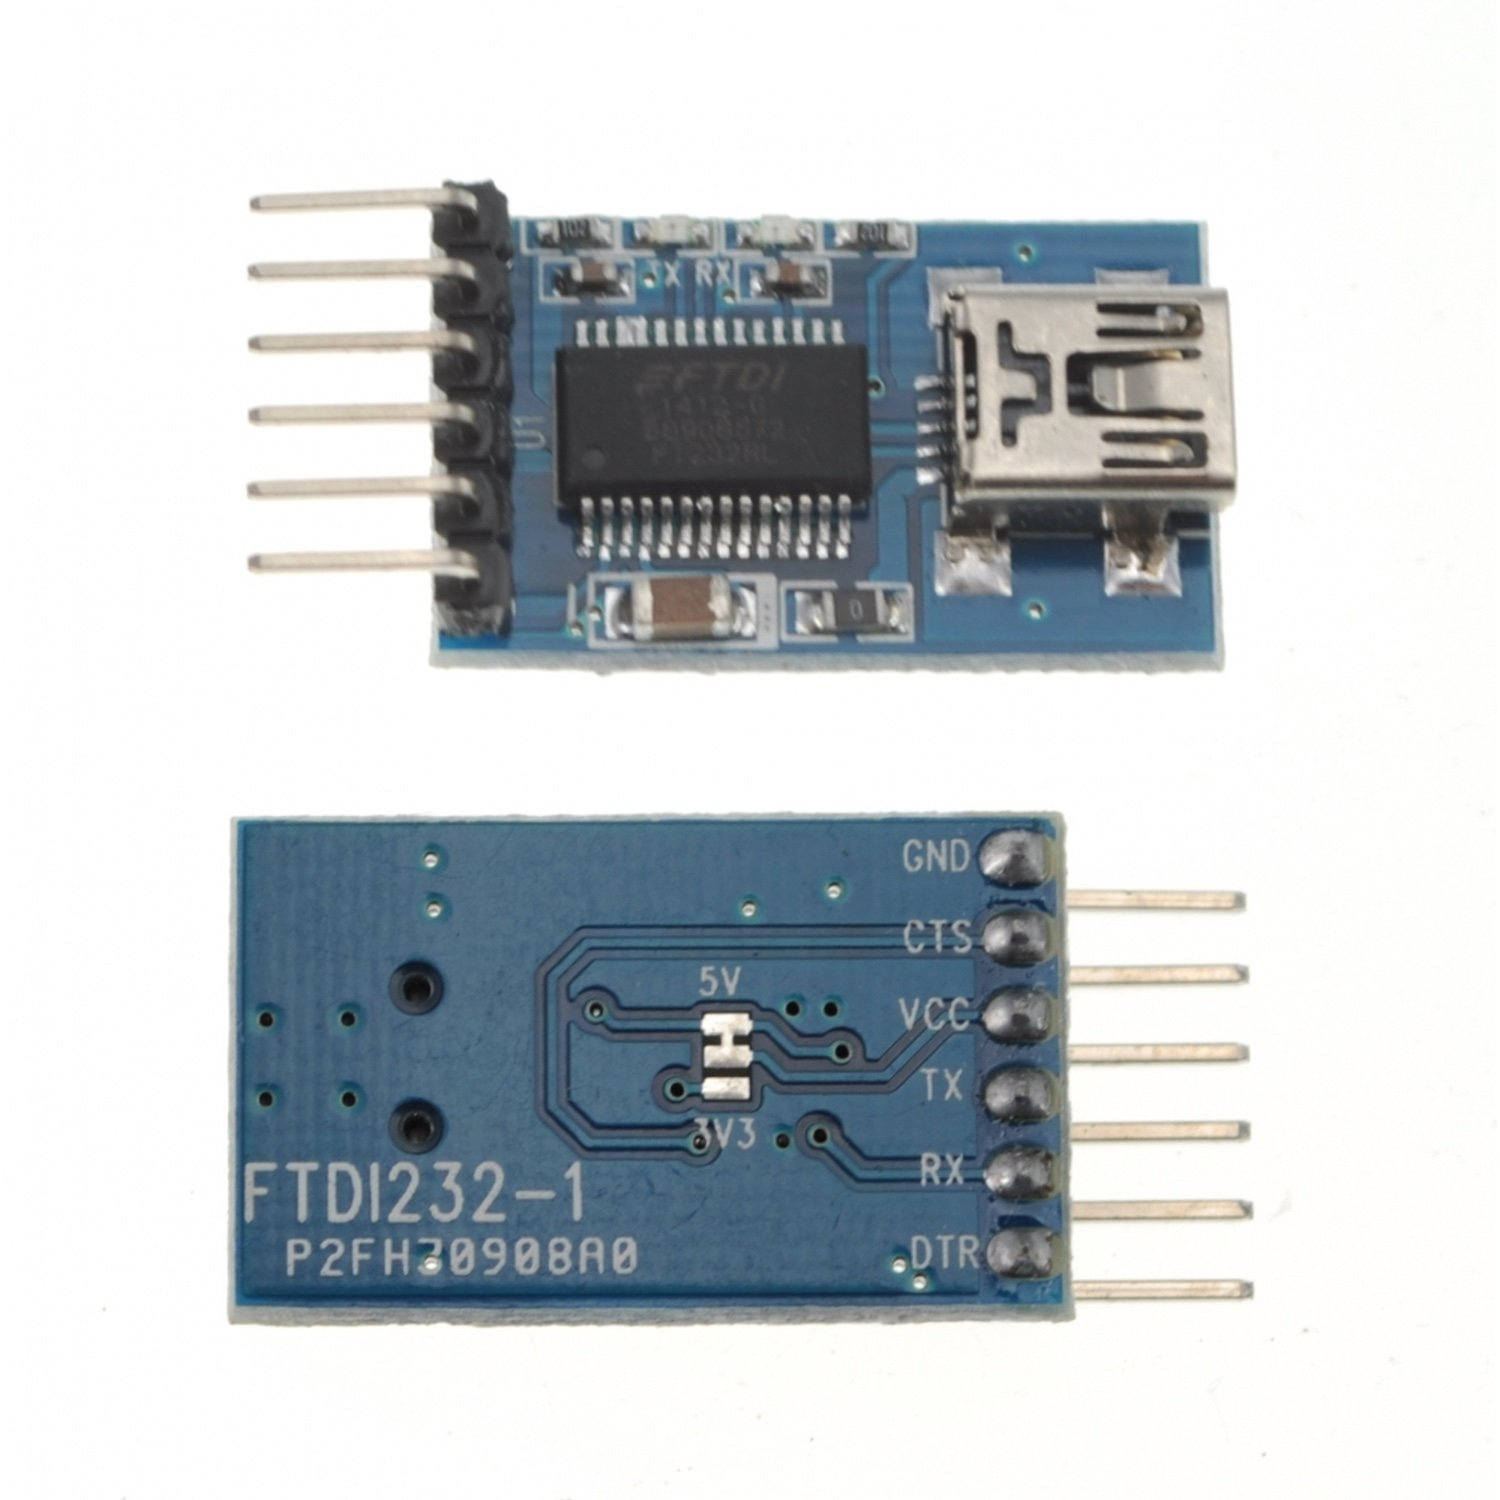 3.3v 5.5v Ft232rl Ftdi Usb to Ttl Serial Adapter Module for Arduino Mini Port yn4561 liuhe a serial module usb 485 422 232 ttl cp2102 serial port com